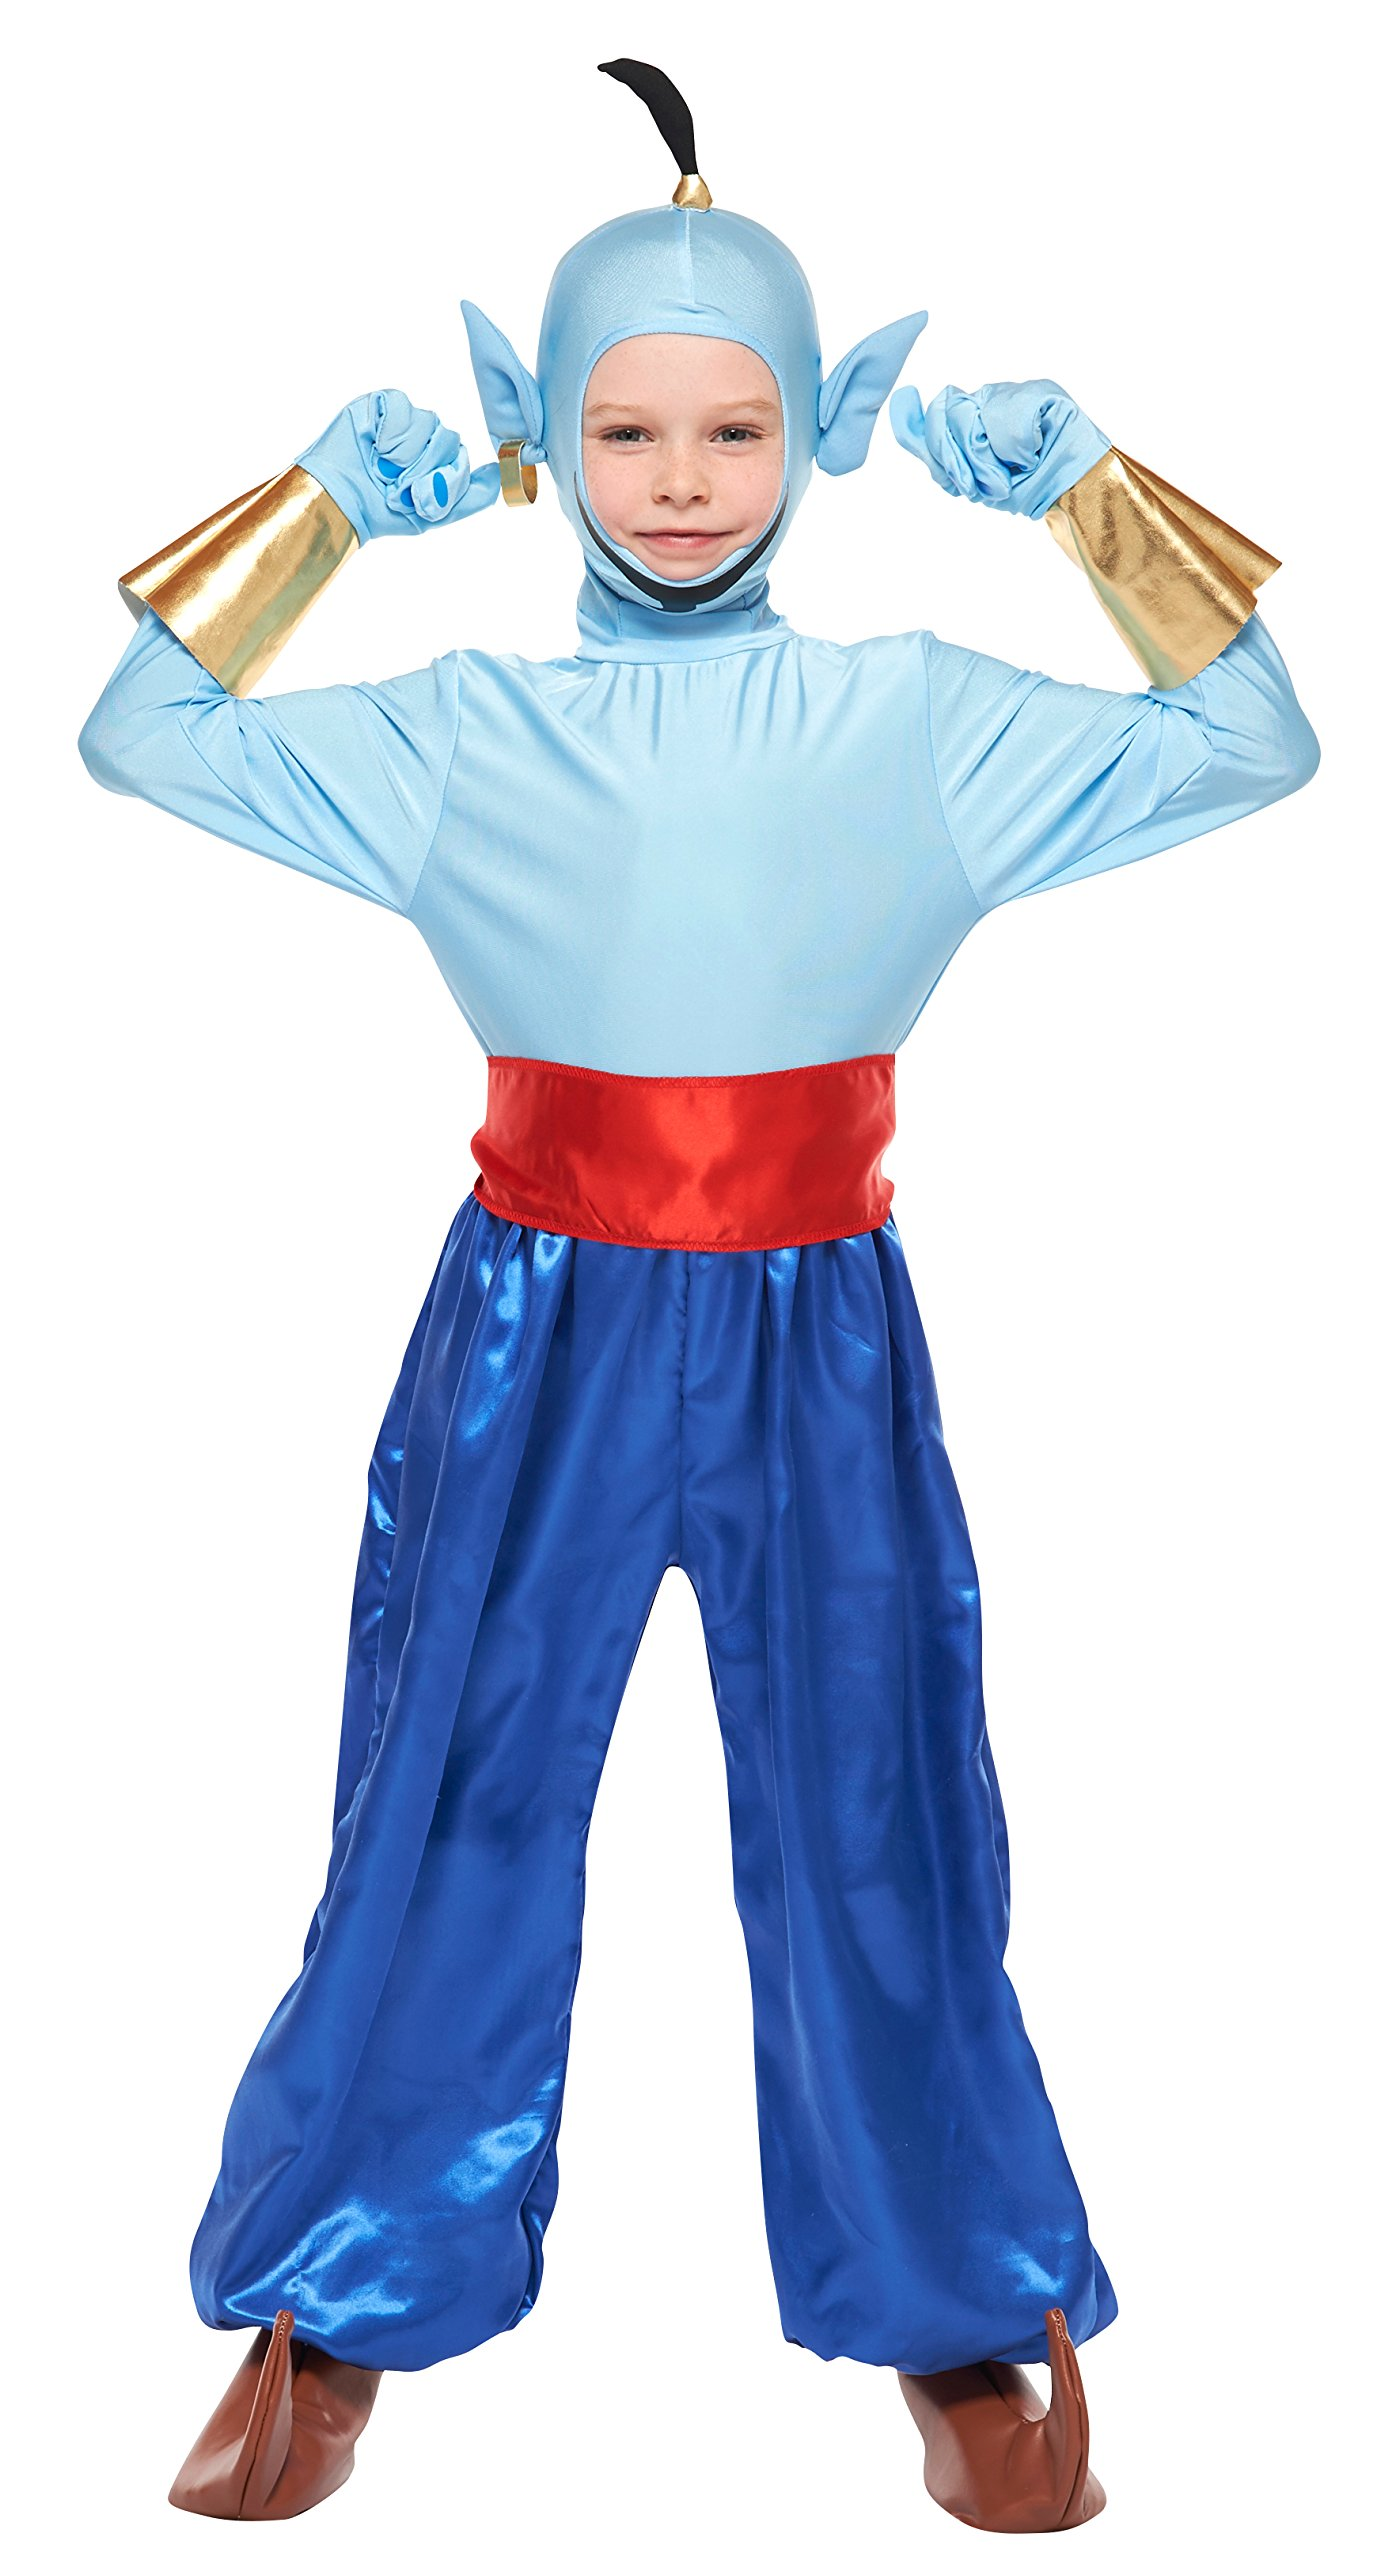 Disney's Aladdin Costume - Genie Costume - Child S Size